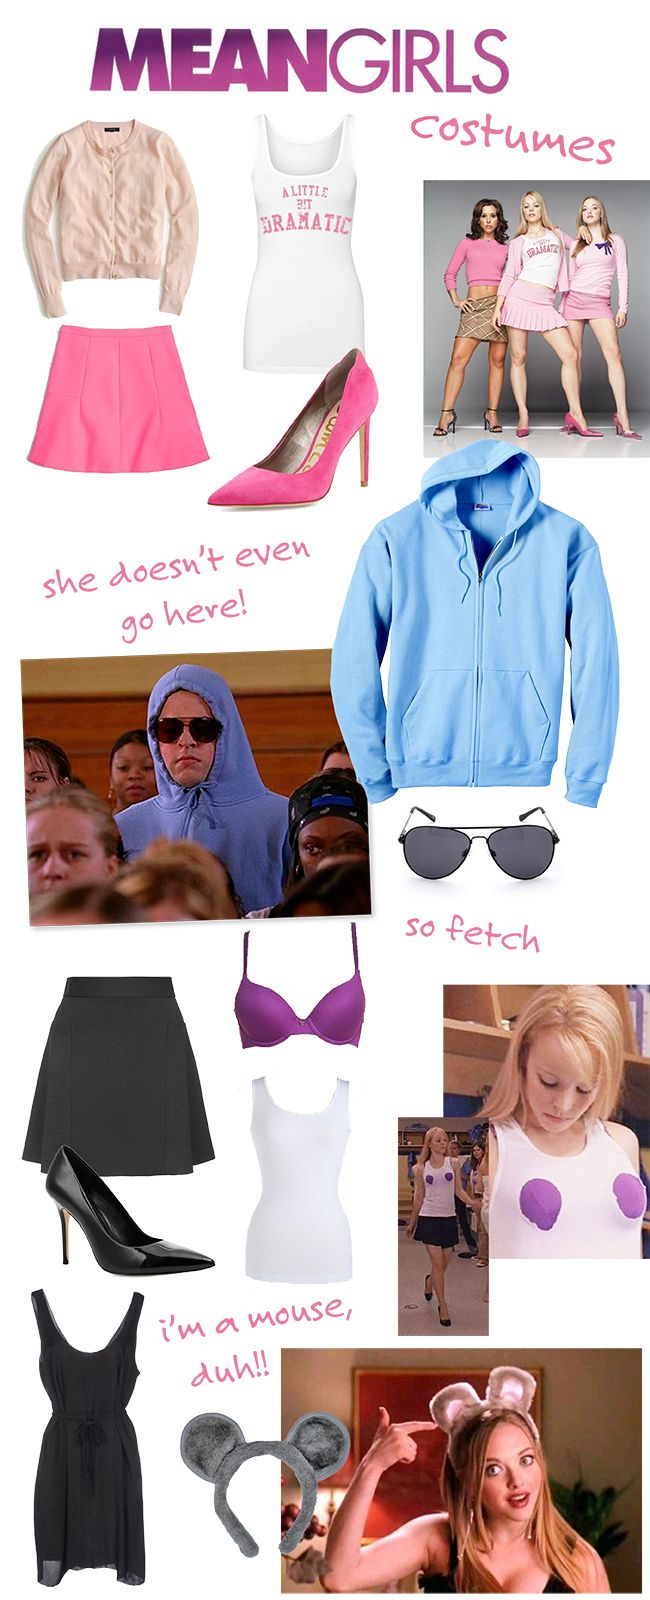 Easy Mean Girls costume ideas